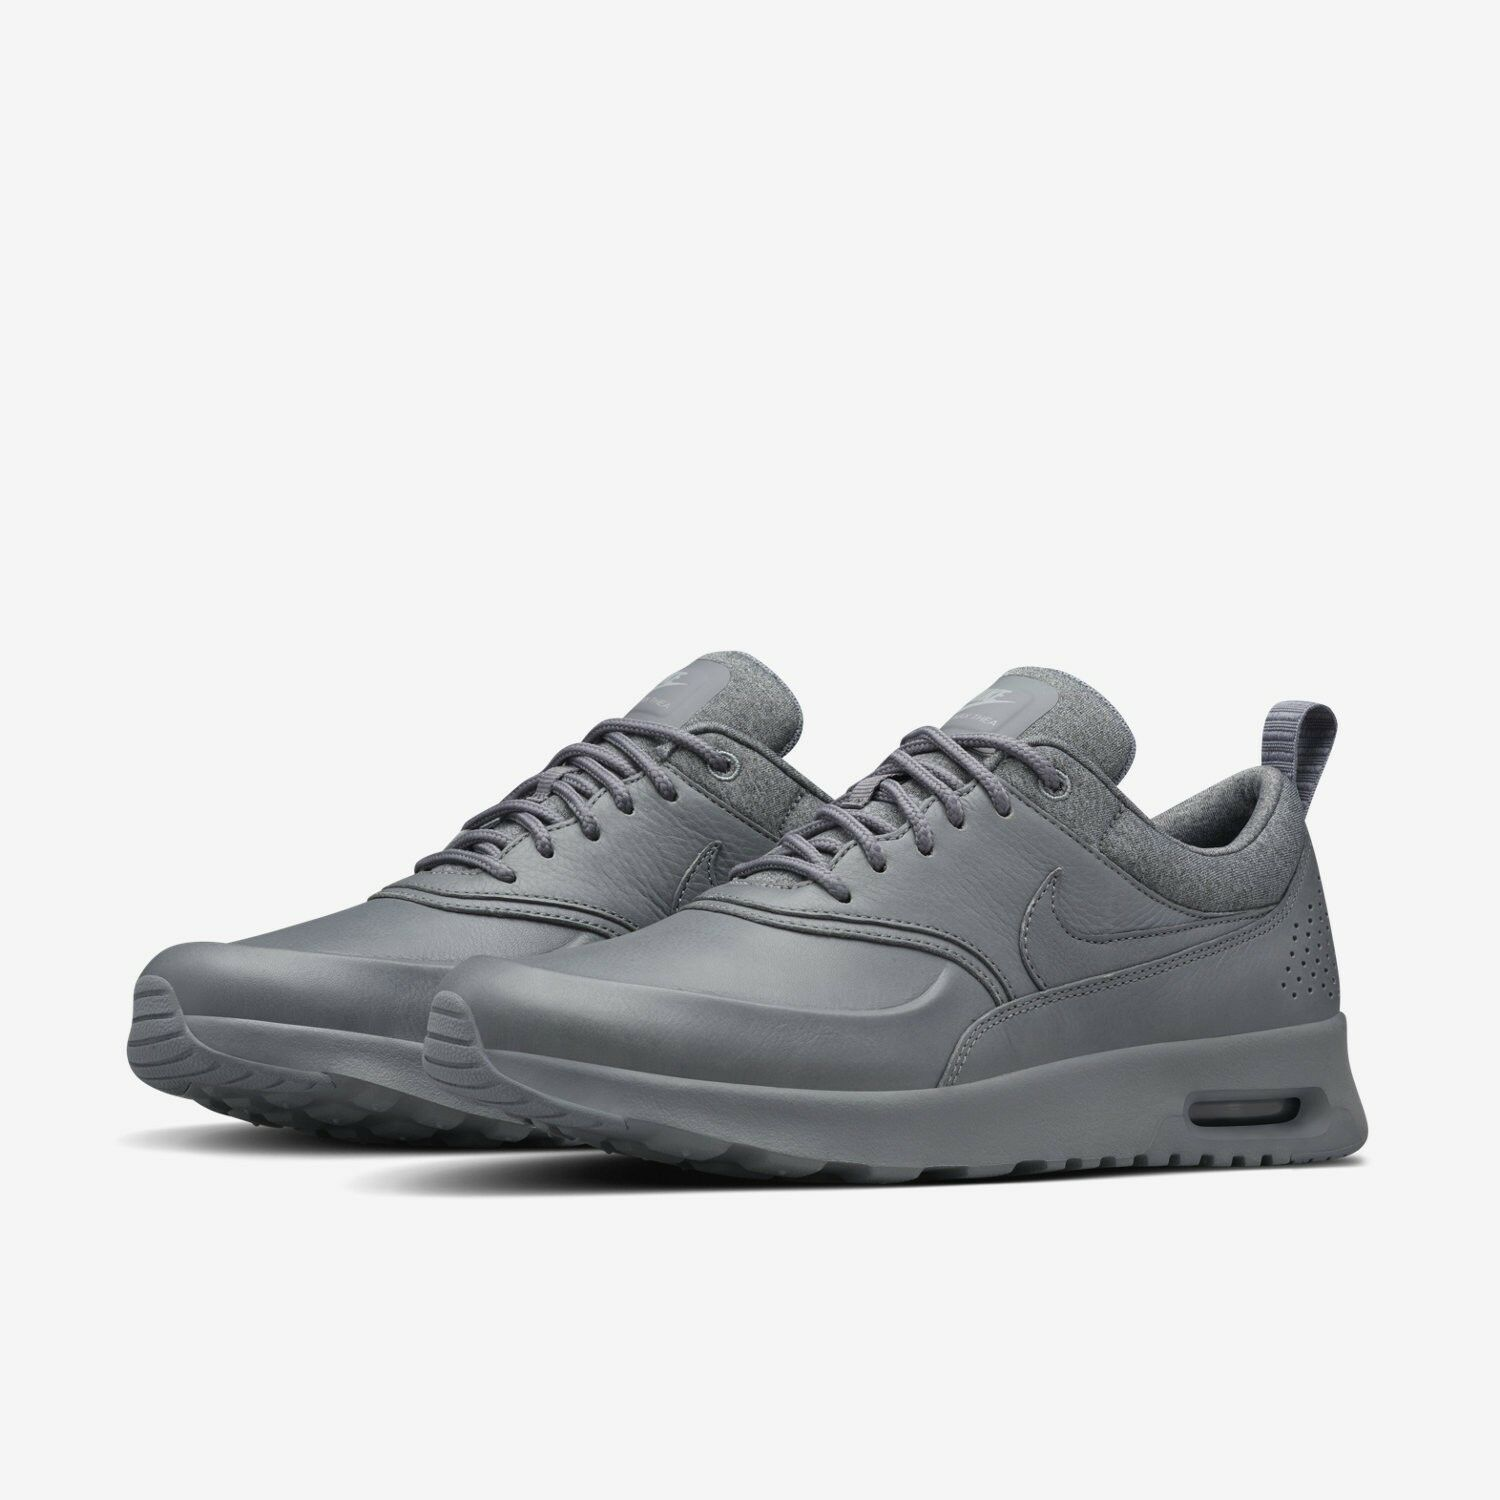 0f526f3b803c1 Nike Air Max Thea Pinnacle Cool Grey 839611-003 WMN Sz 9.5 Leather for sale  online | eBay